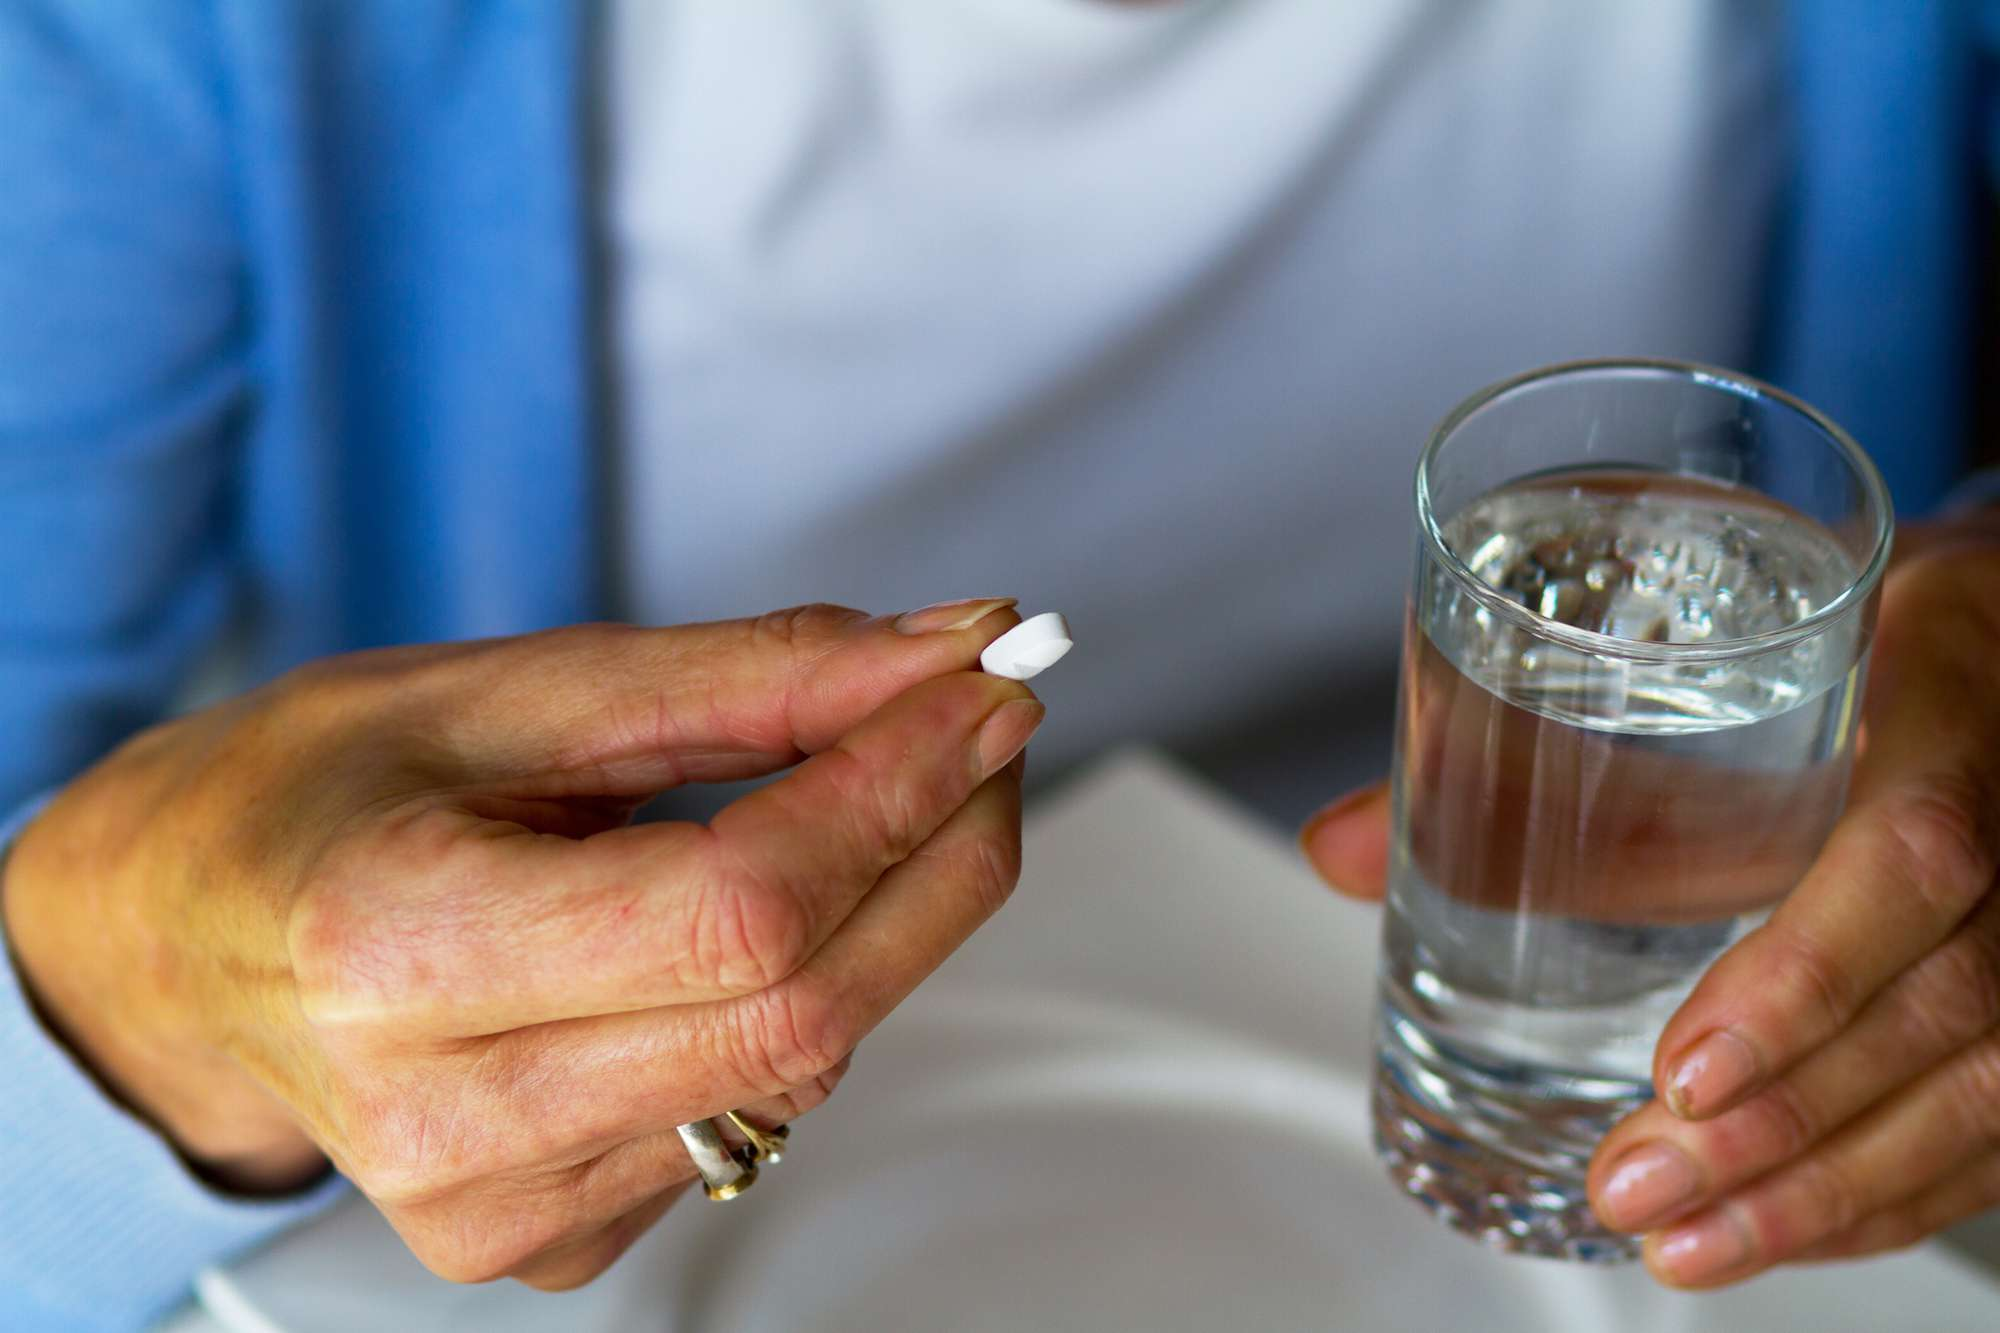 Close up of a woman's hands holding a pill and a glass of water